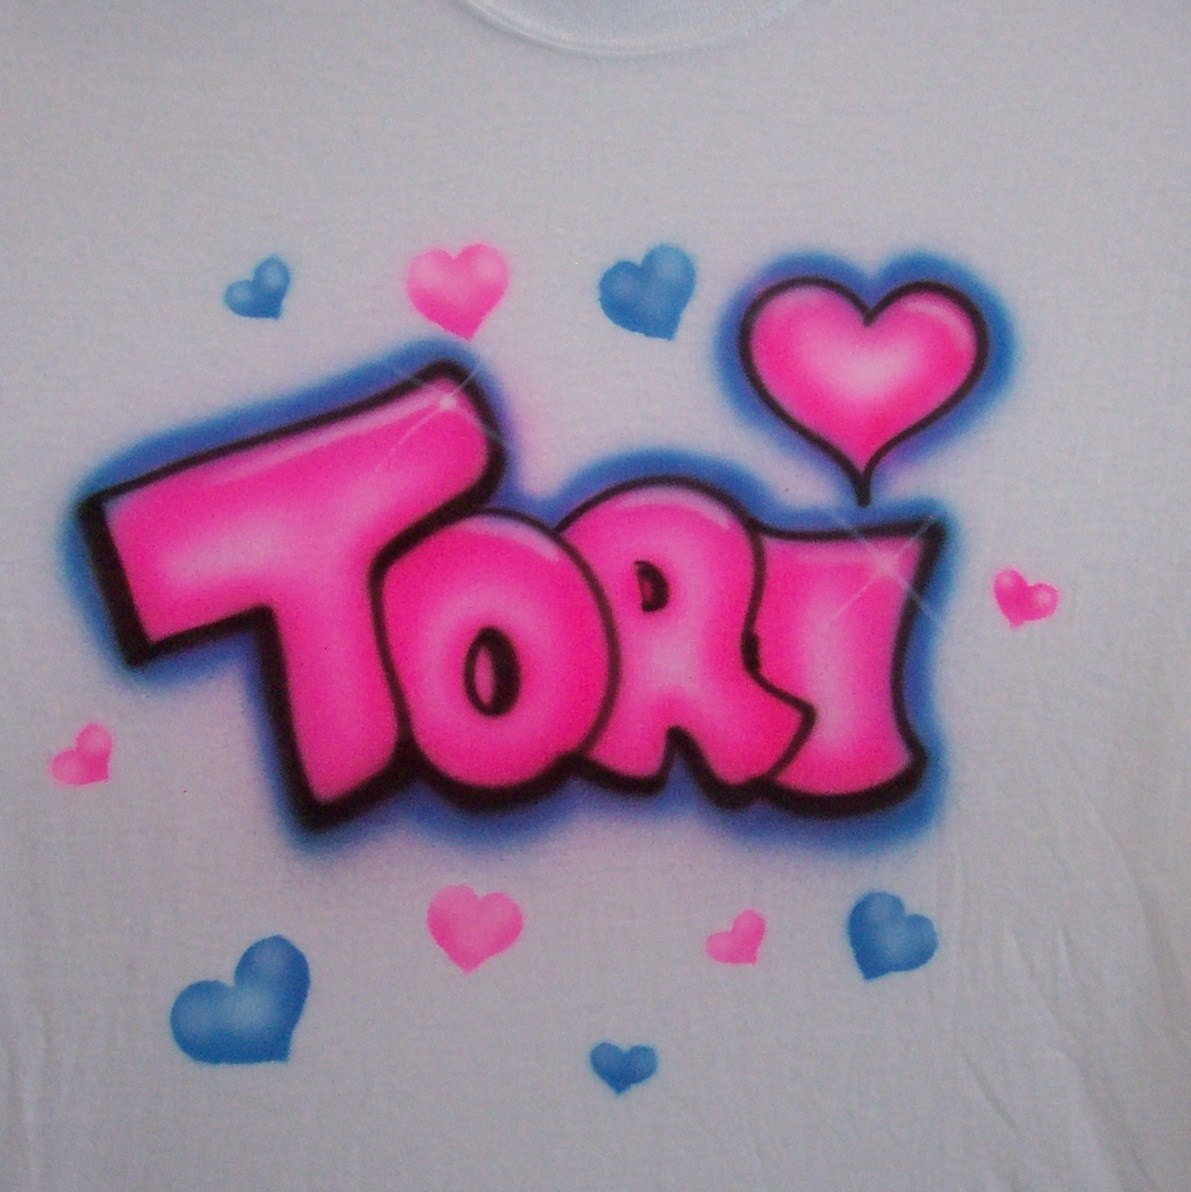 Uncategorized Bubble Letter Name hearts w bubble letter name personalized airbrush t shirt